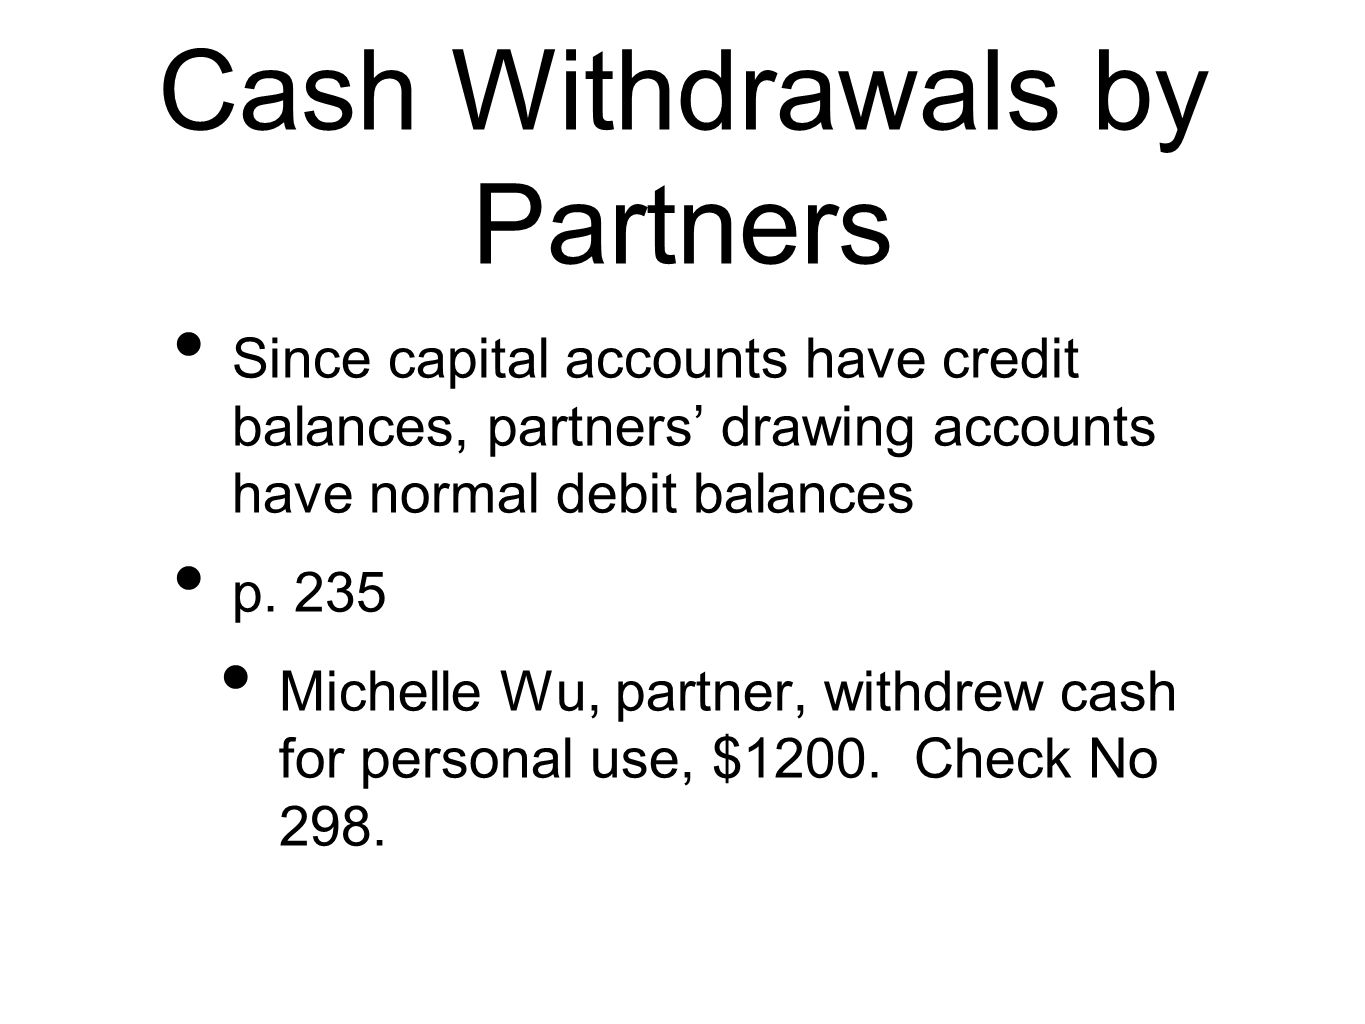 Cash Withdrawals by Partners